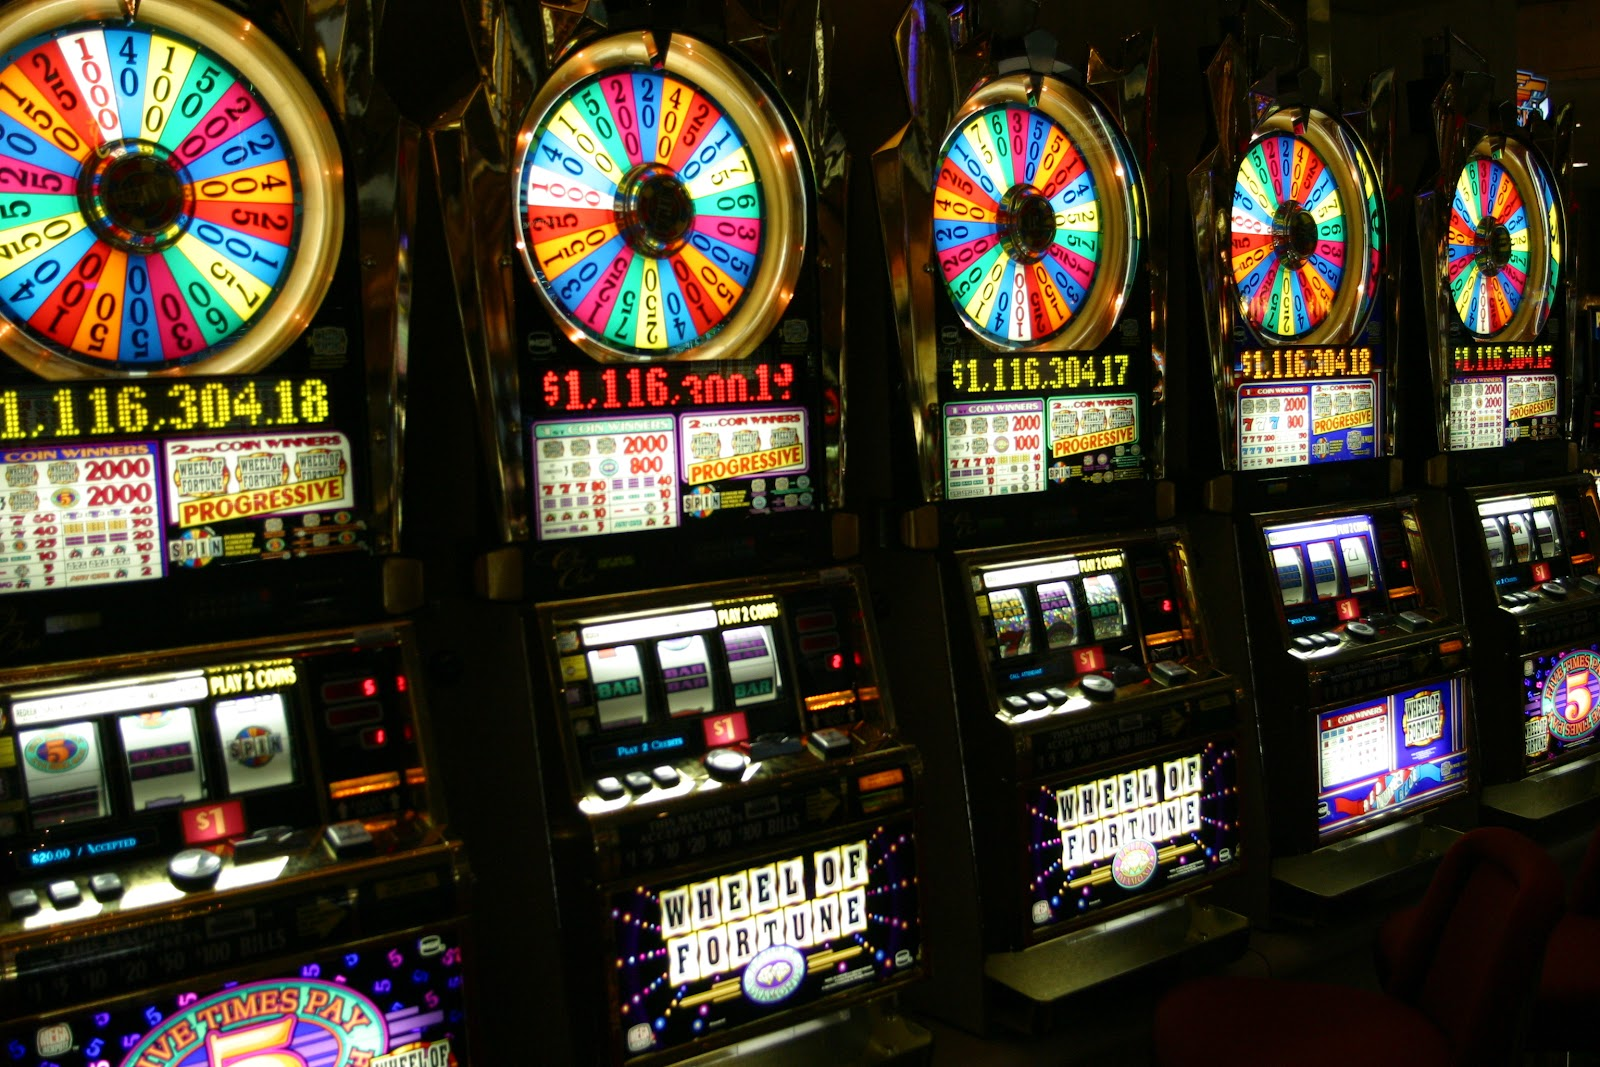 Five empty slots machines that you can use the best slots bonuses on